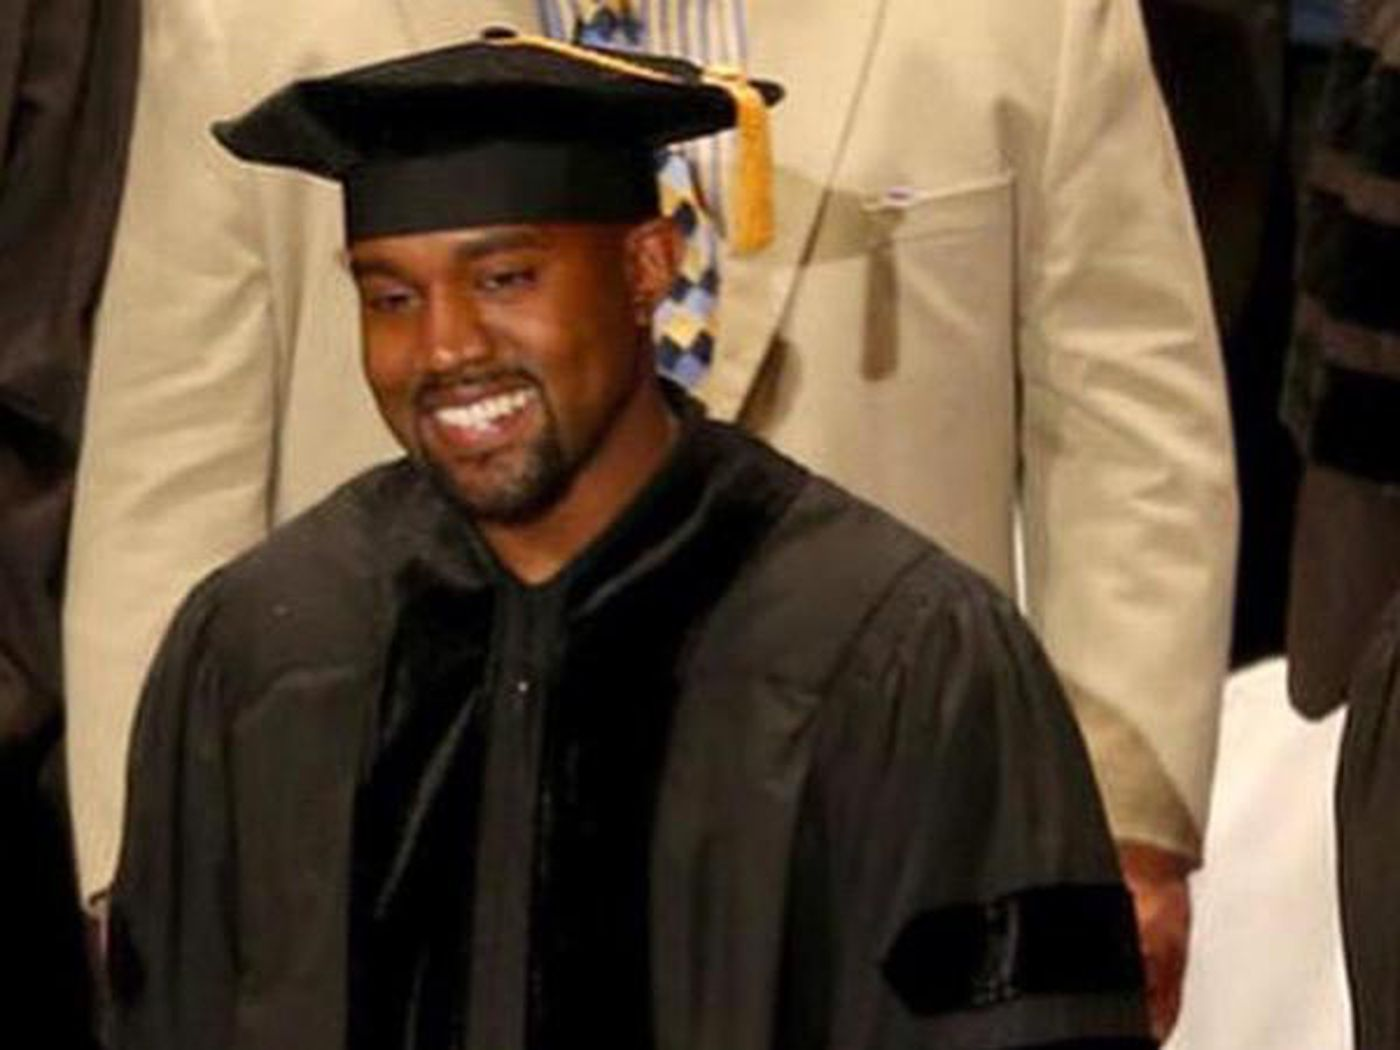 Kanye West Smiling in a Cap and Gown Will Make Your Heart Melt - Racked